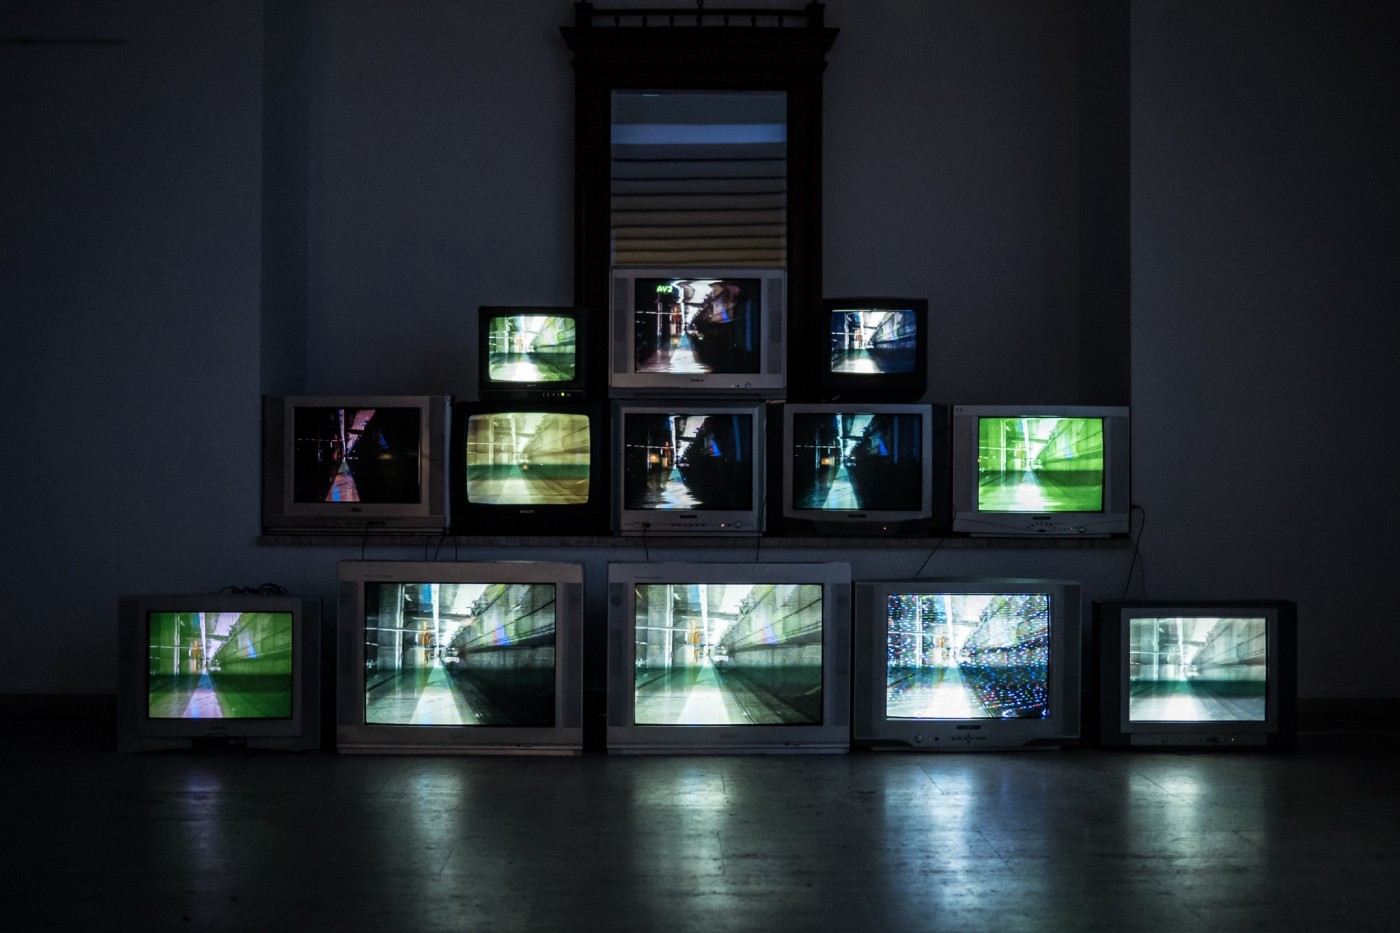 A pyramid of televisions showing the same blurred image in different colours.